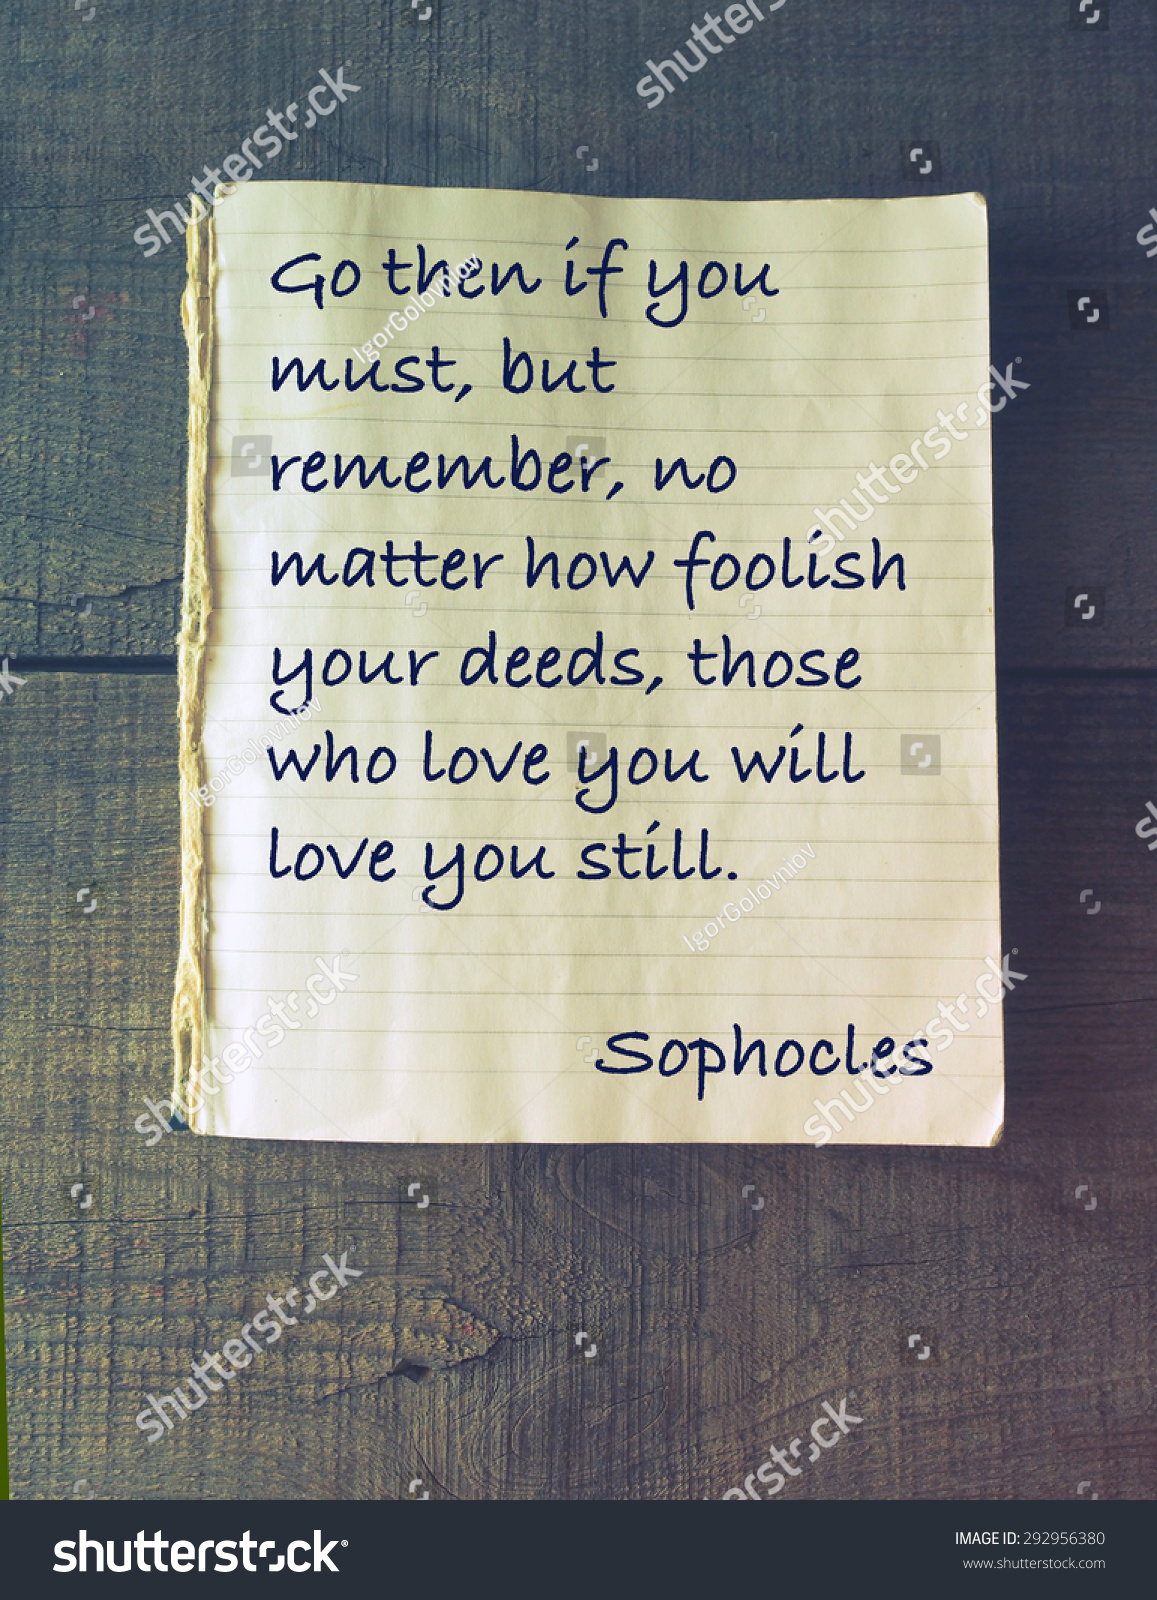 Go then if you must but remember no matter how foolish your deeds